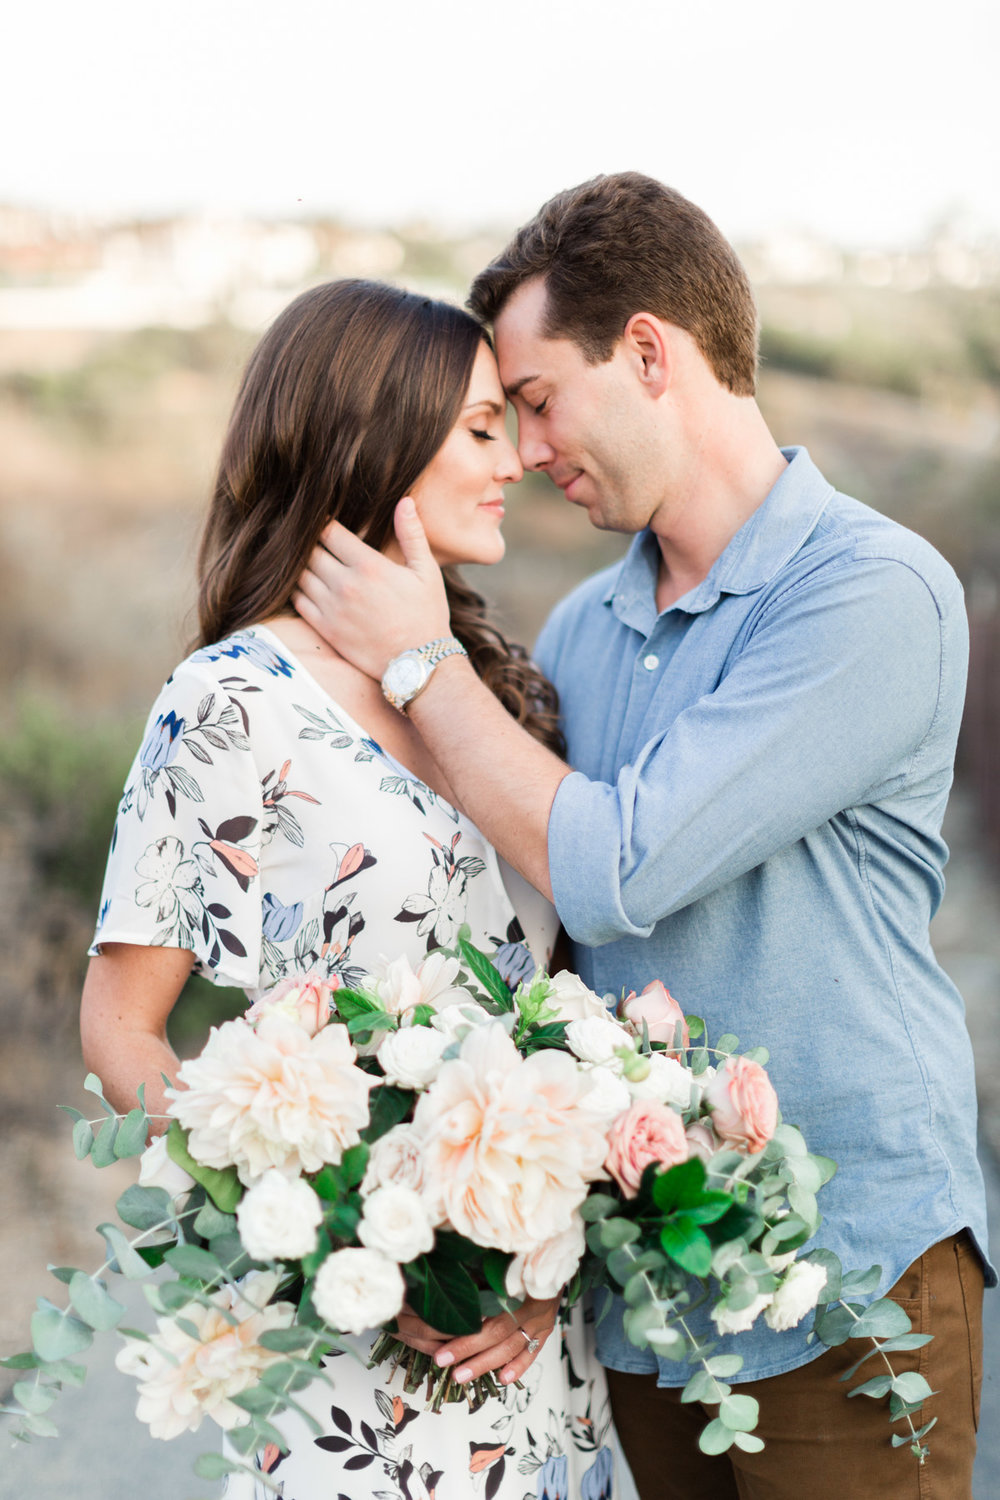 Classic blush dahlia, white rose and eucalyptus bouquet for down to earth beach engagement photo session | Newport Beach, CA | Compass Floral | Wedding Florist in San Diego and Southern California | Cavin Elizabeth Photography